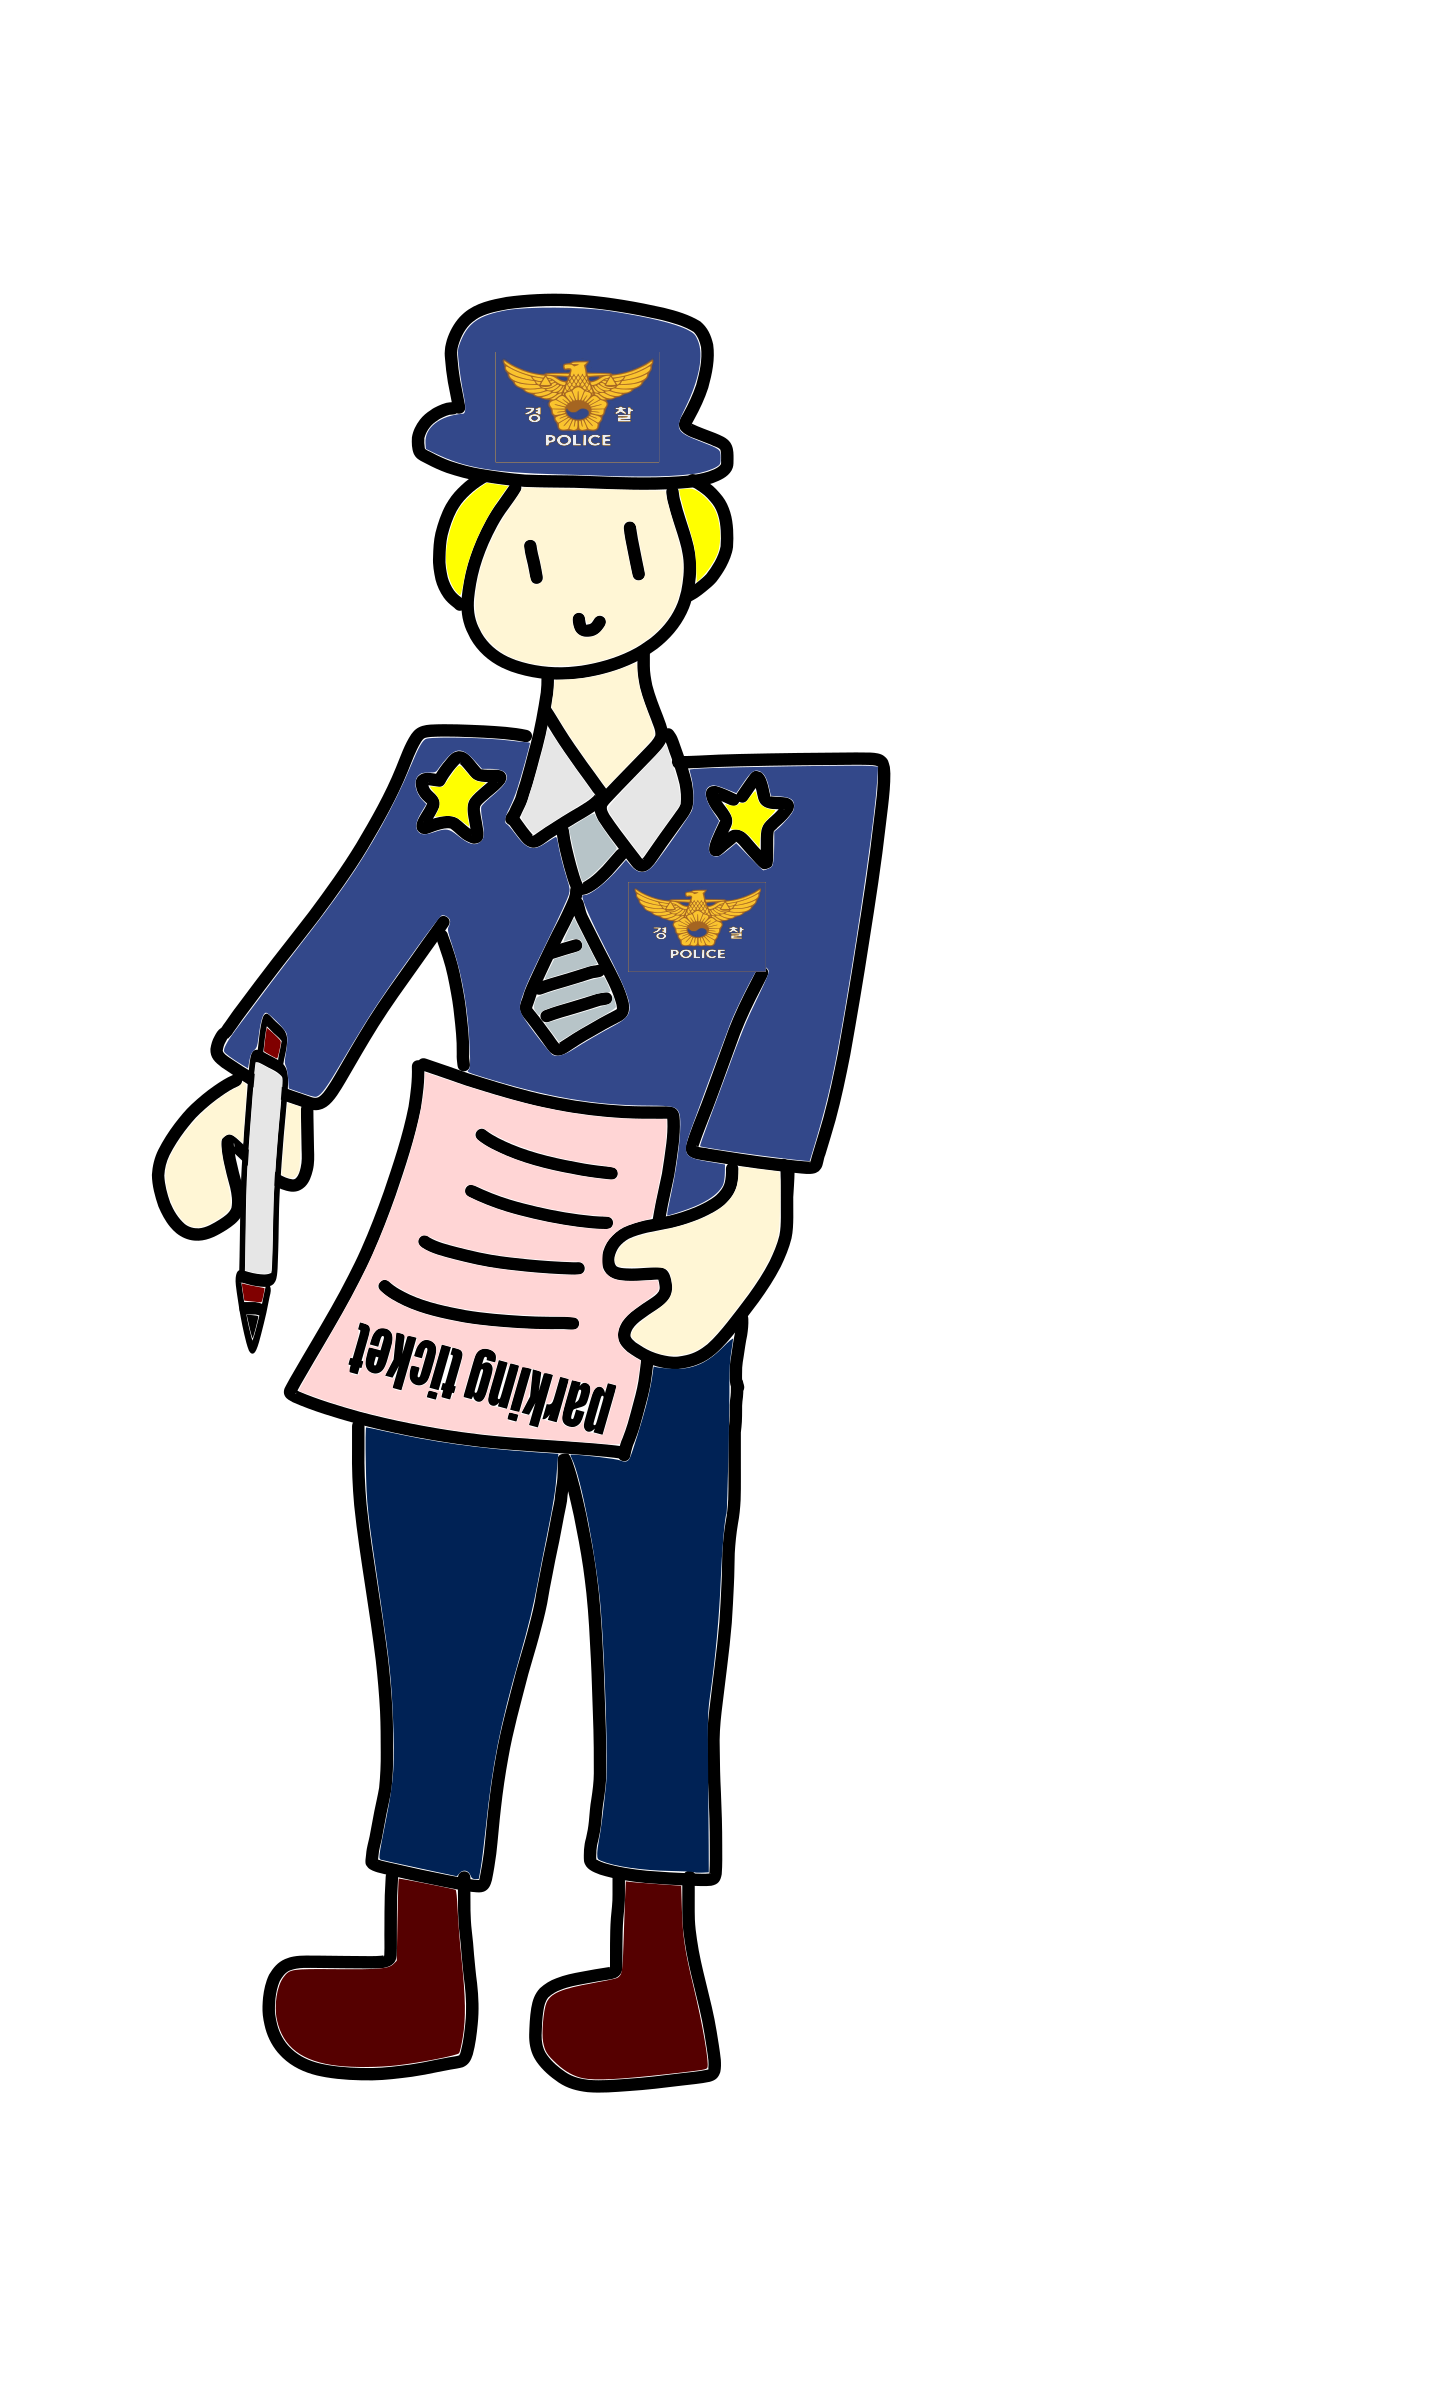 With a parking ticket. Clipart man police officer